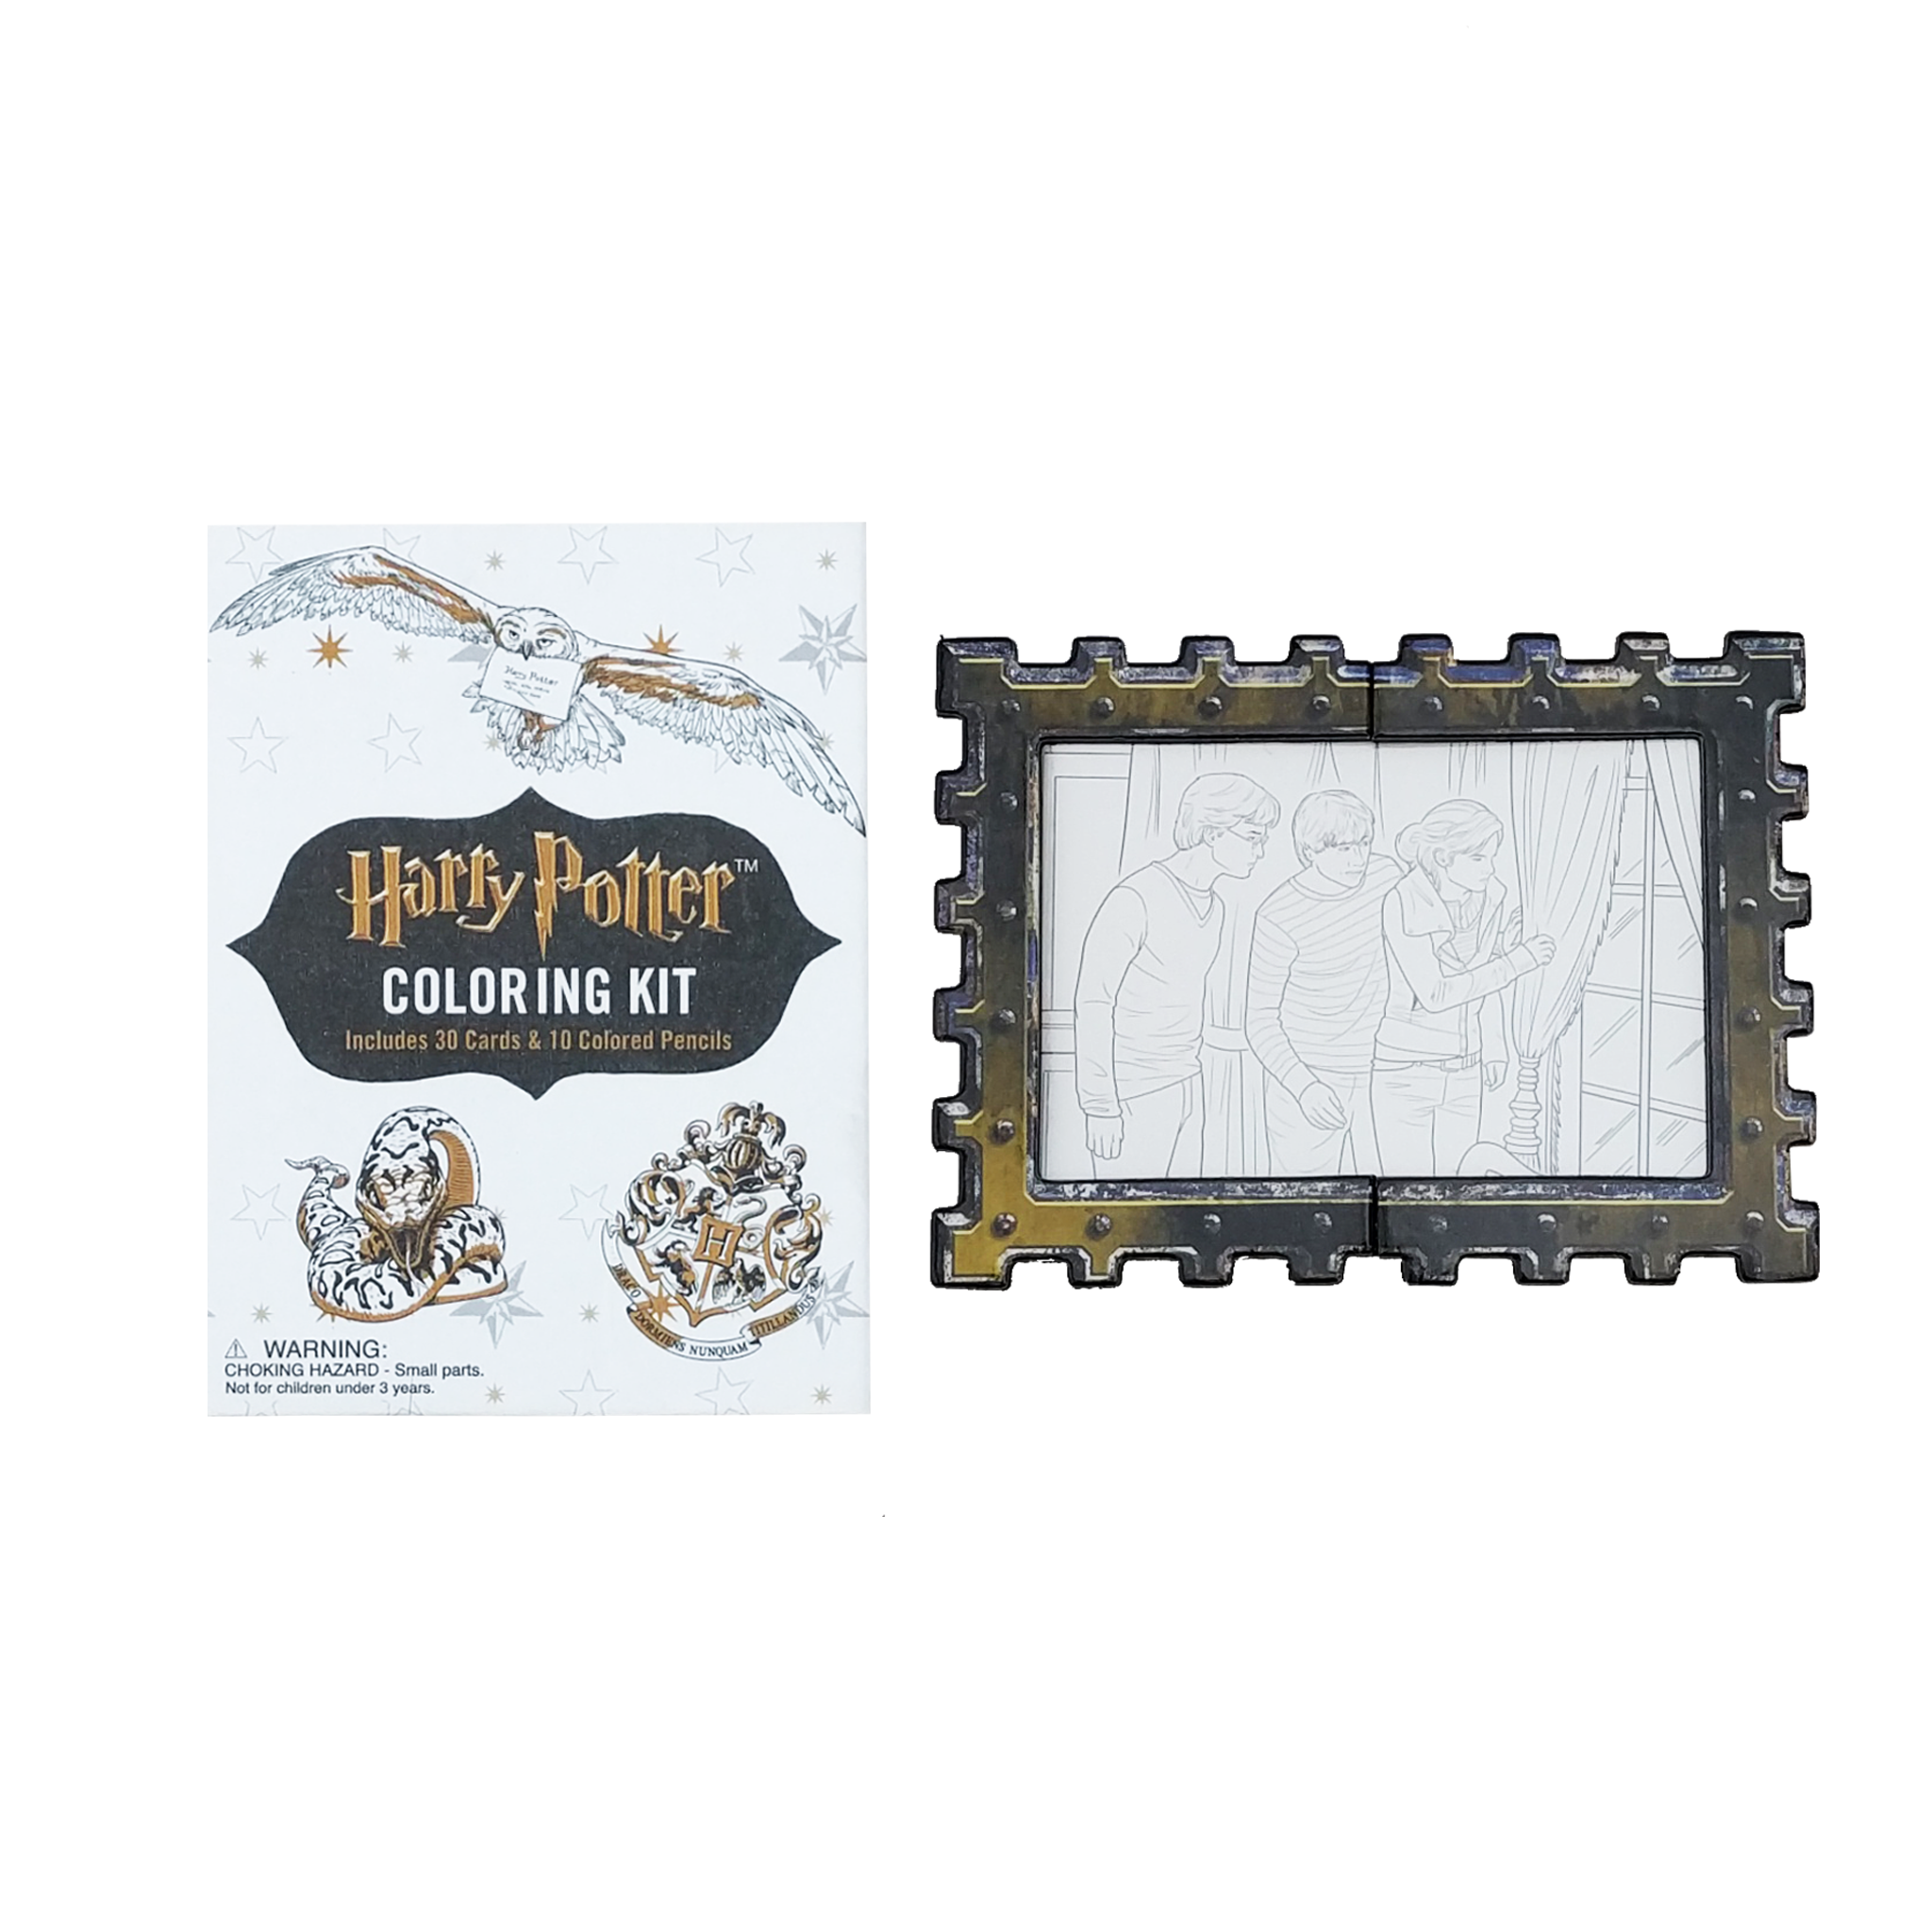 Harry Potter Colouring Kit Accessory With Book